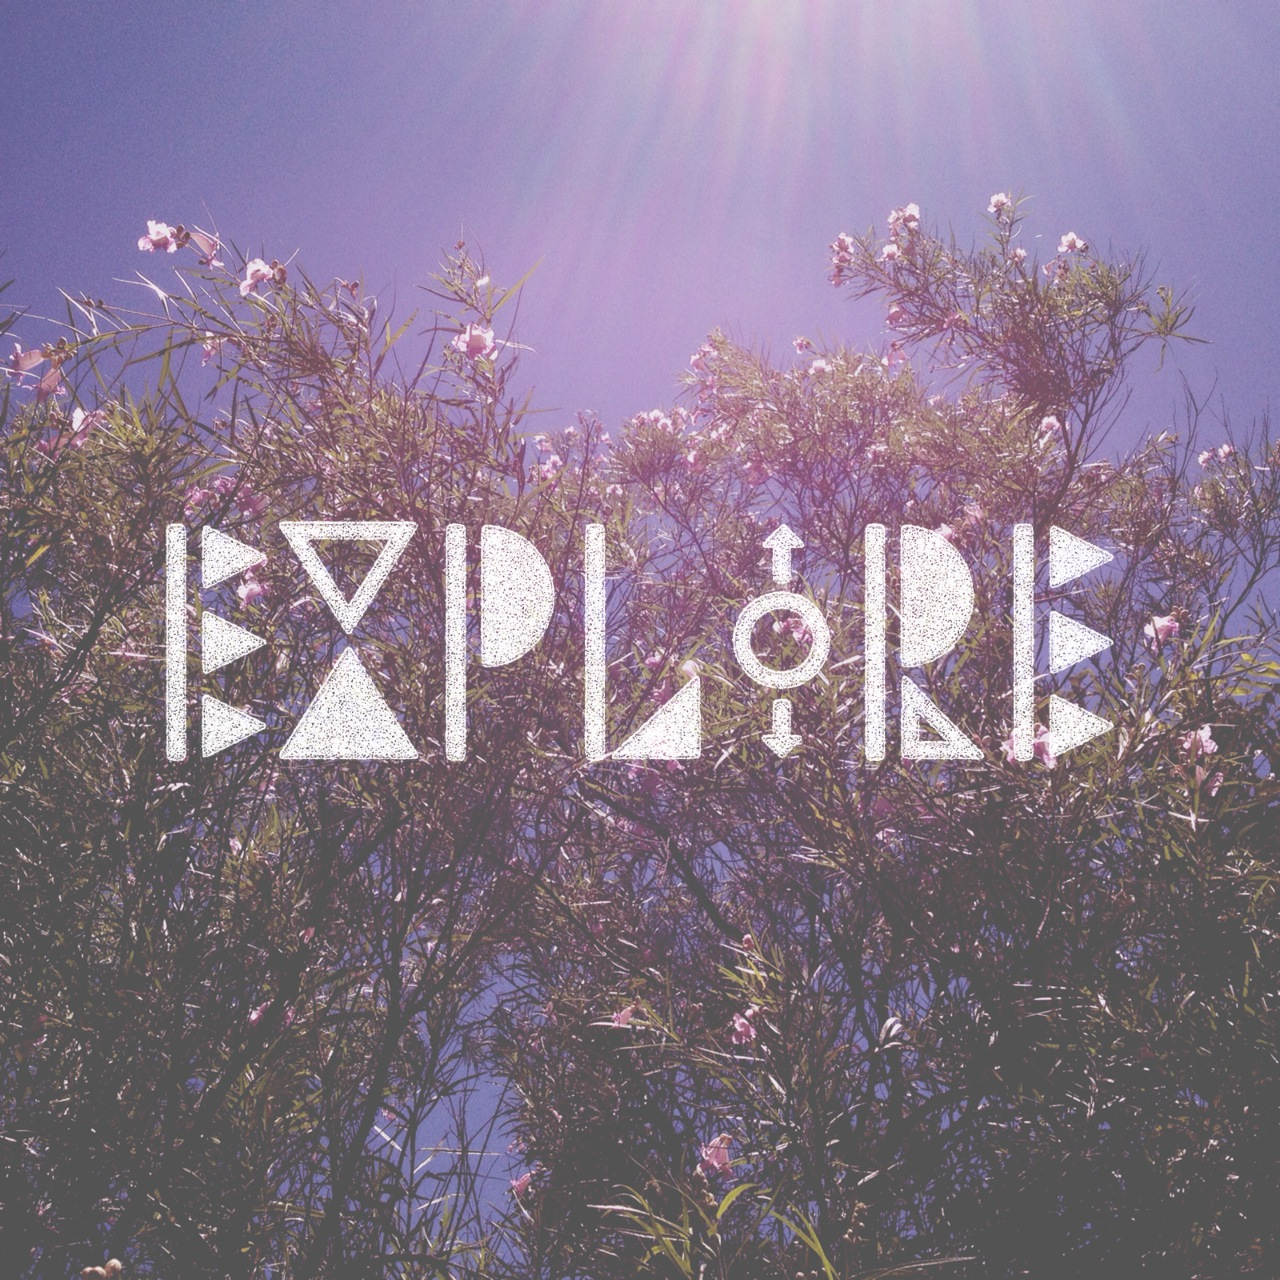 Explore via bohocollective.com